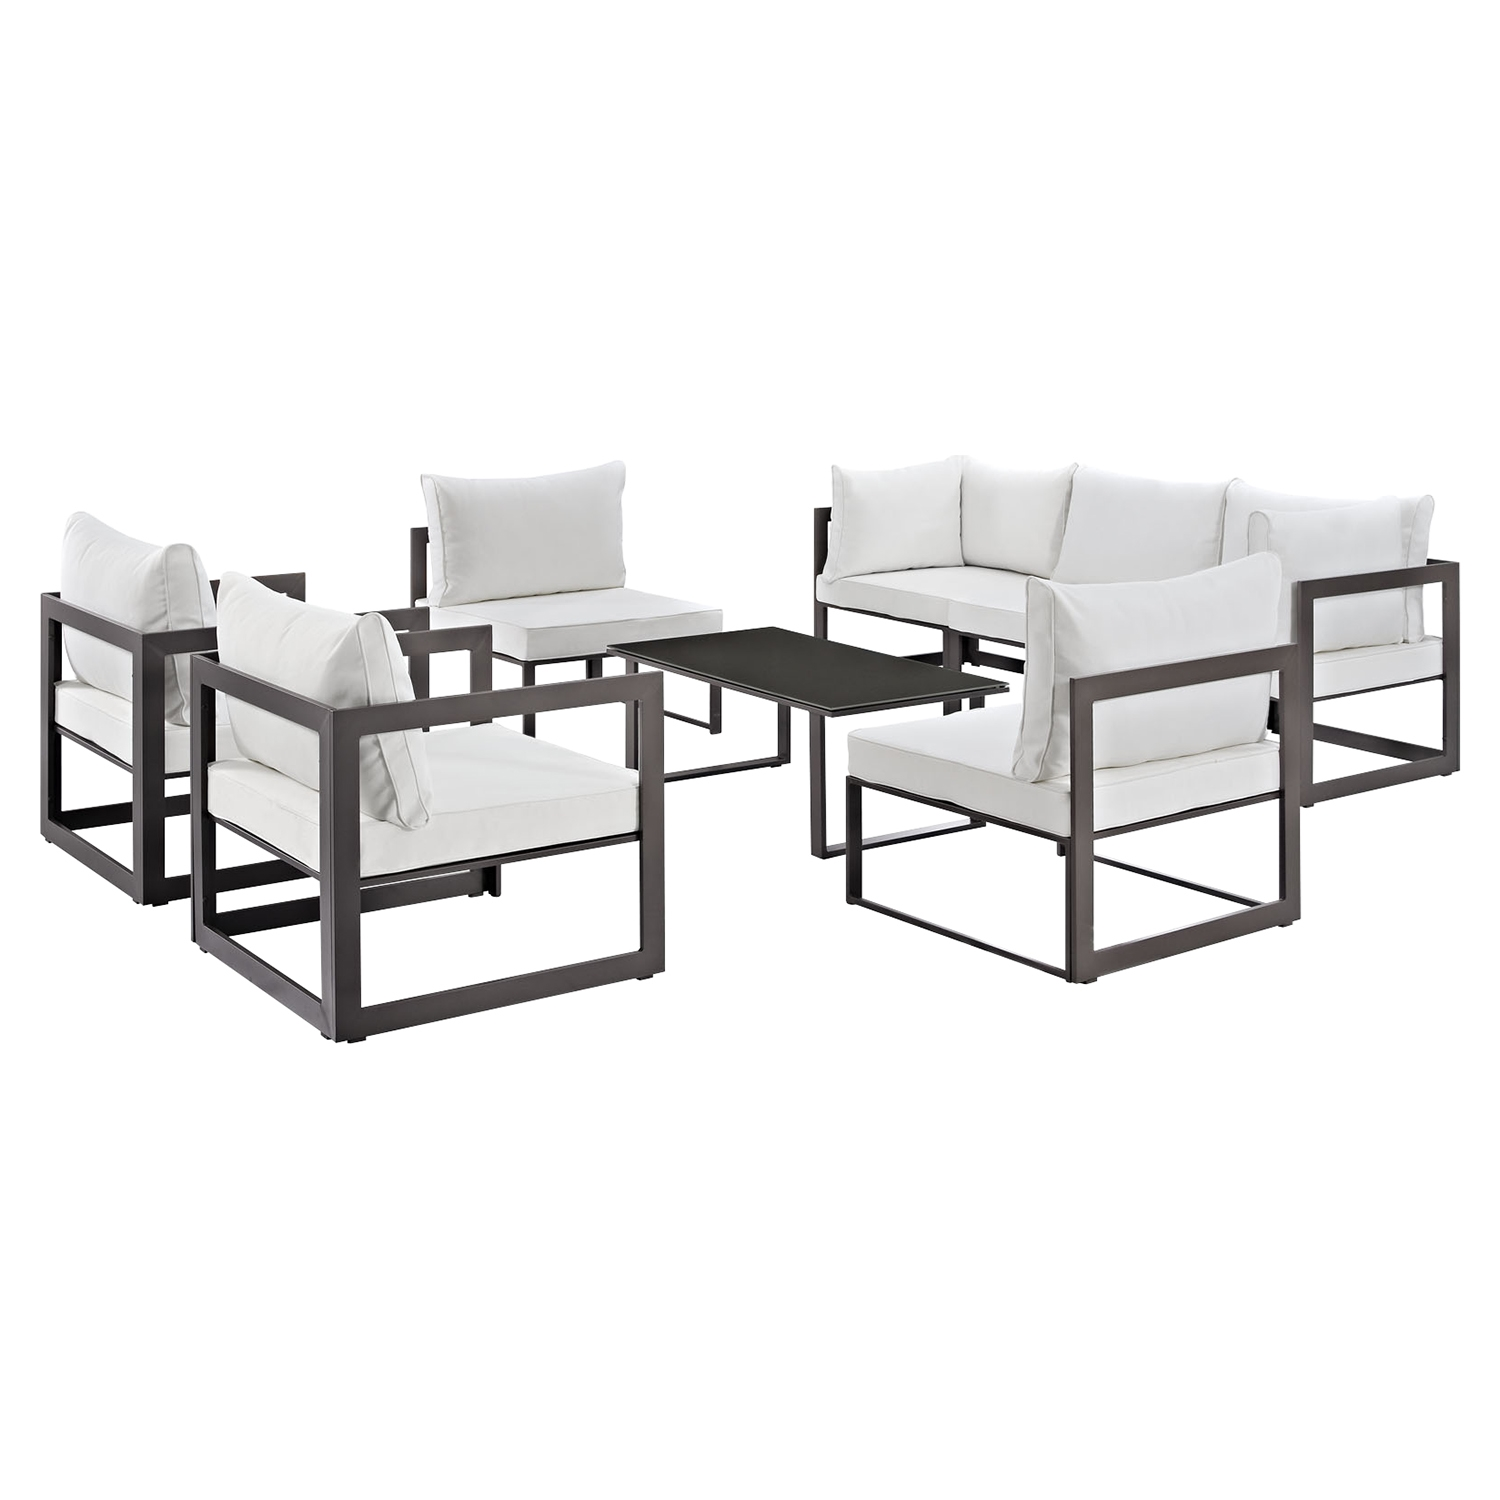 Fortuna 8 Pieces Patio Sofa Set - White Cushion, Brown Frame - EEI-1725-BRN-WHI-SET